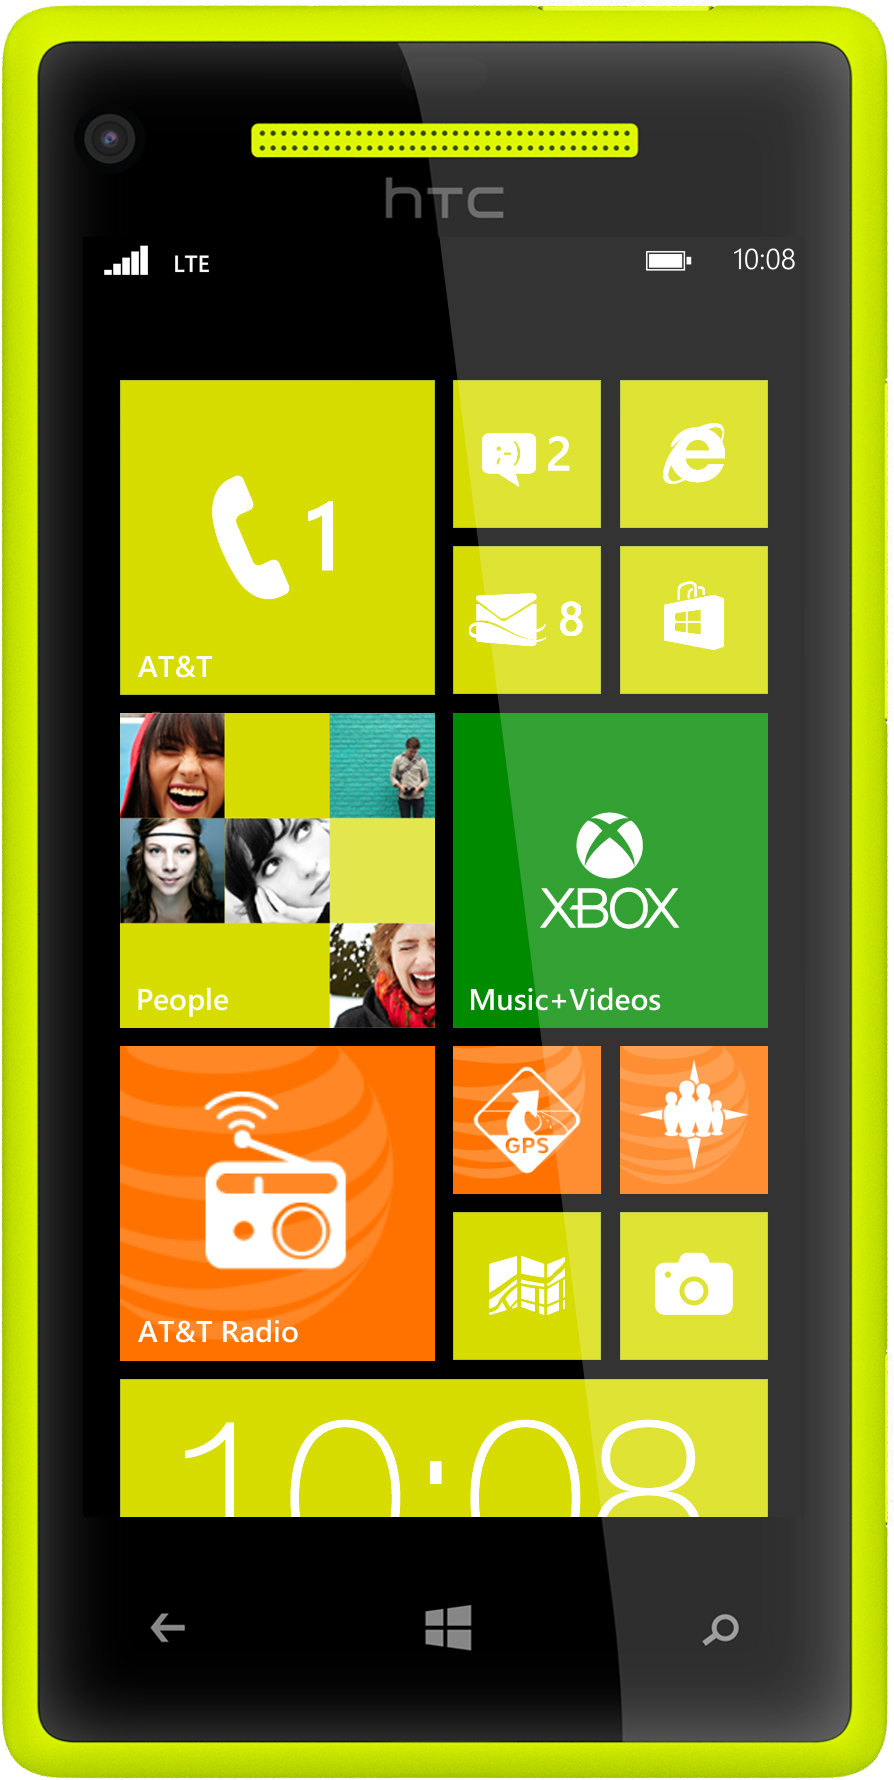 Amazon.com: HTC 8X, Yellow 8GB (AT&T): Cell Phones & Accessories